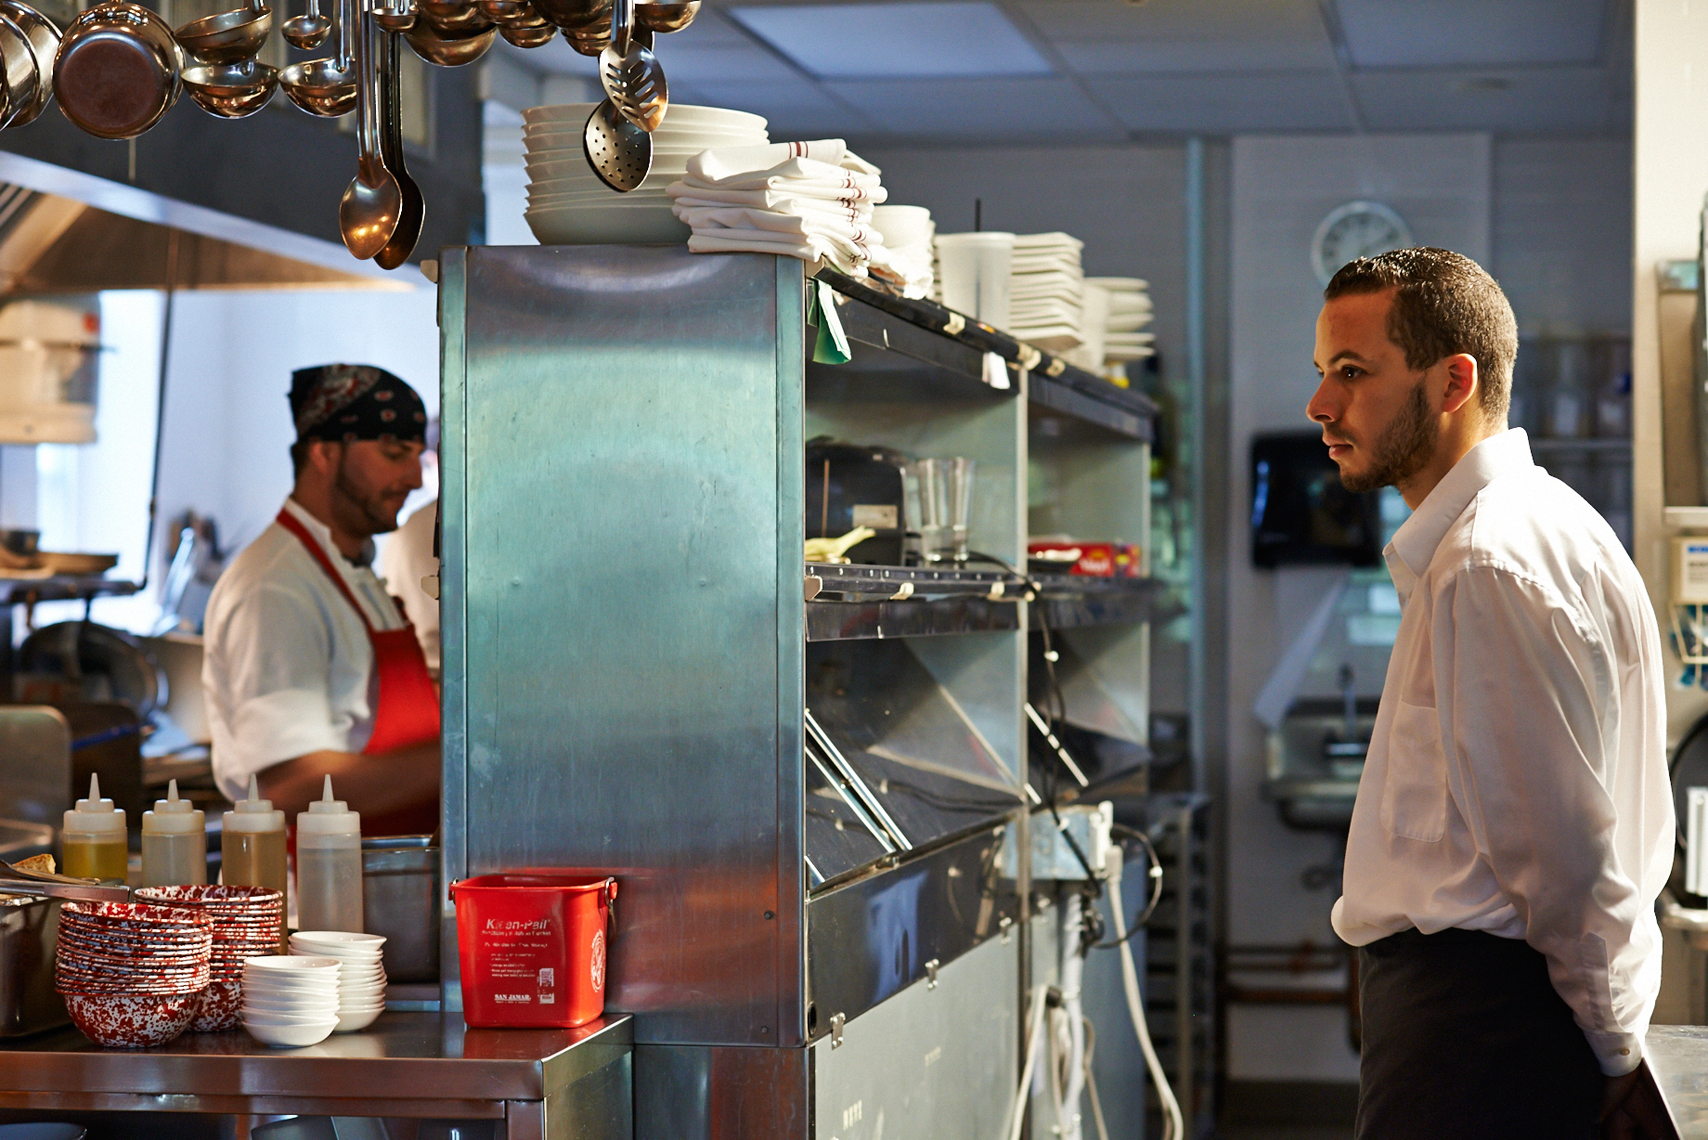 Heath_Robbins_Test_2013-05-02_Waban_Kitchen_dinner_Selects_016